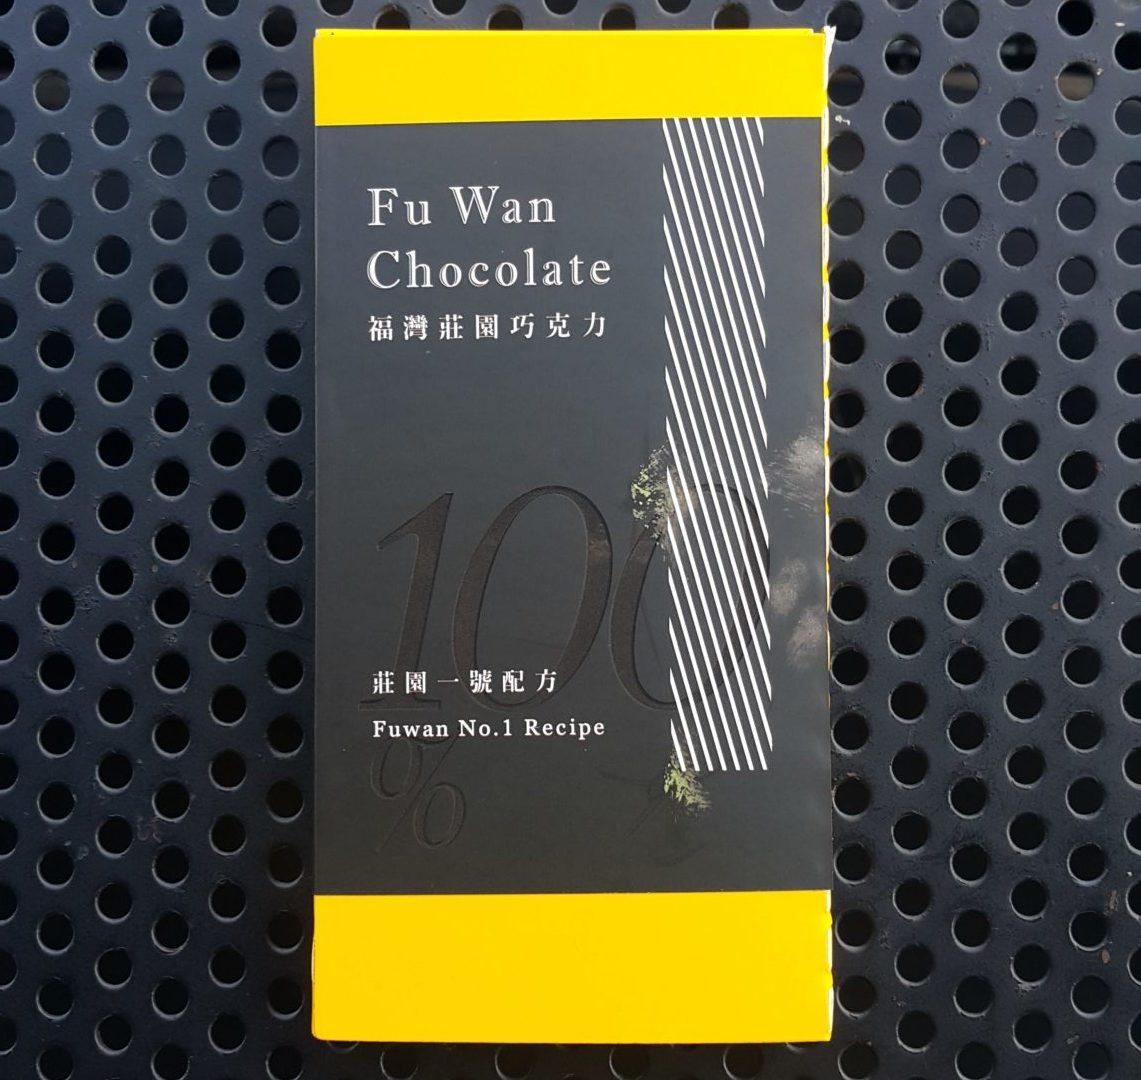 fuwan chocolate papua new guinea 100 percent chocolate taiwan